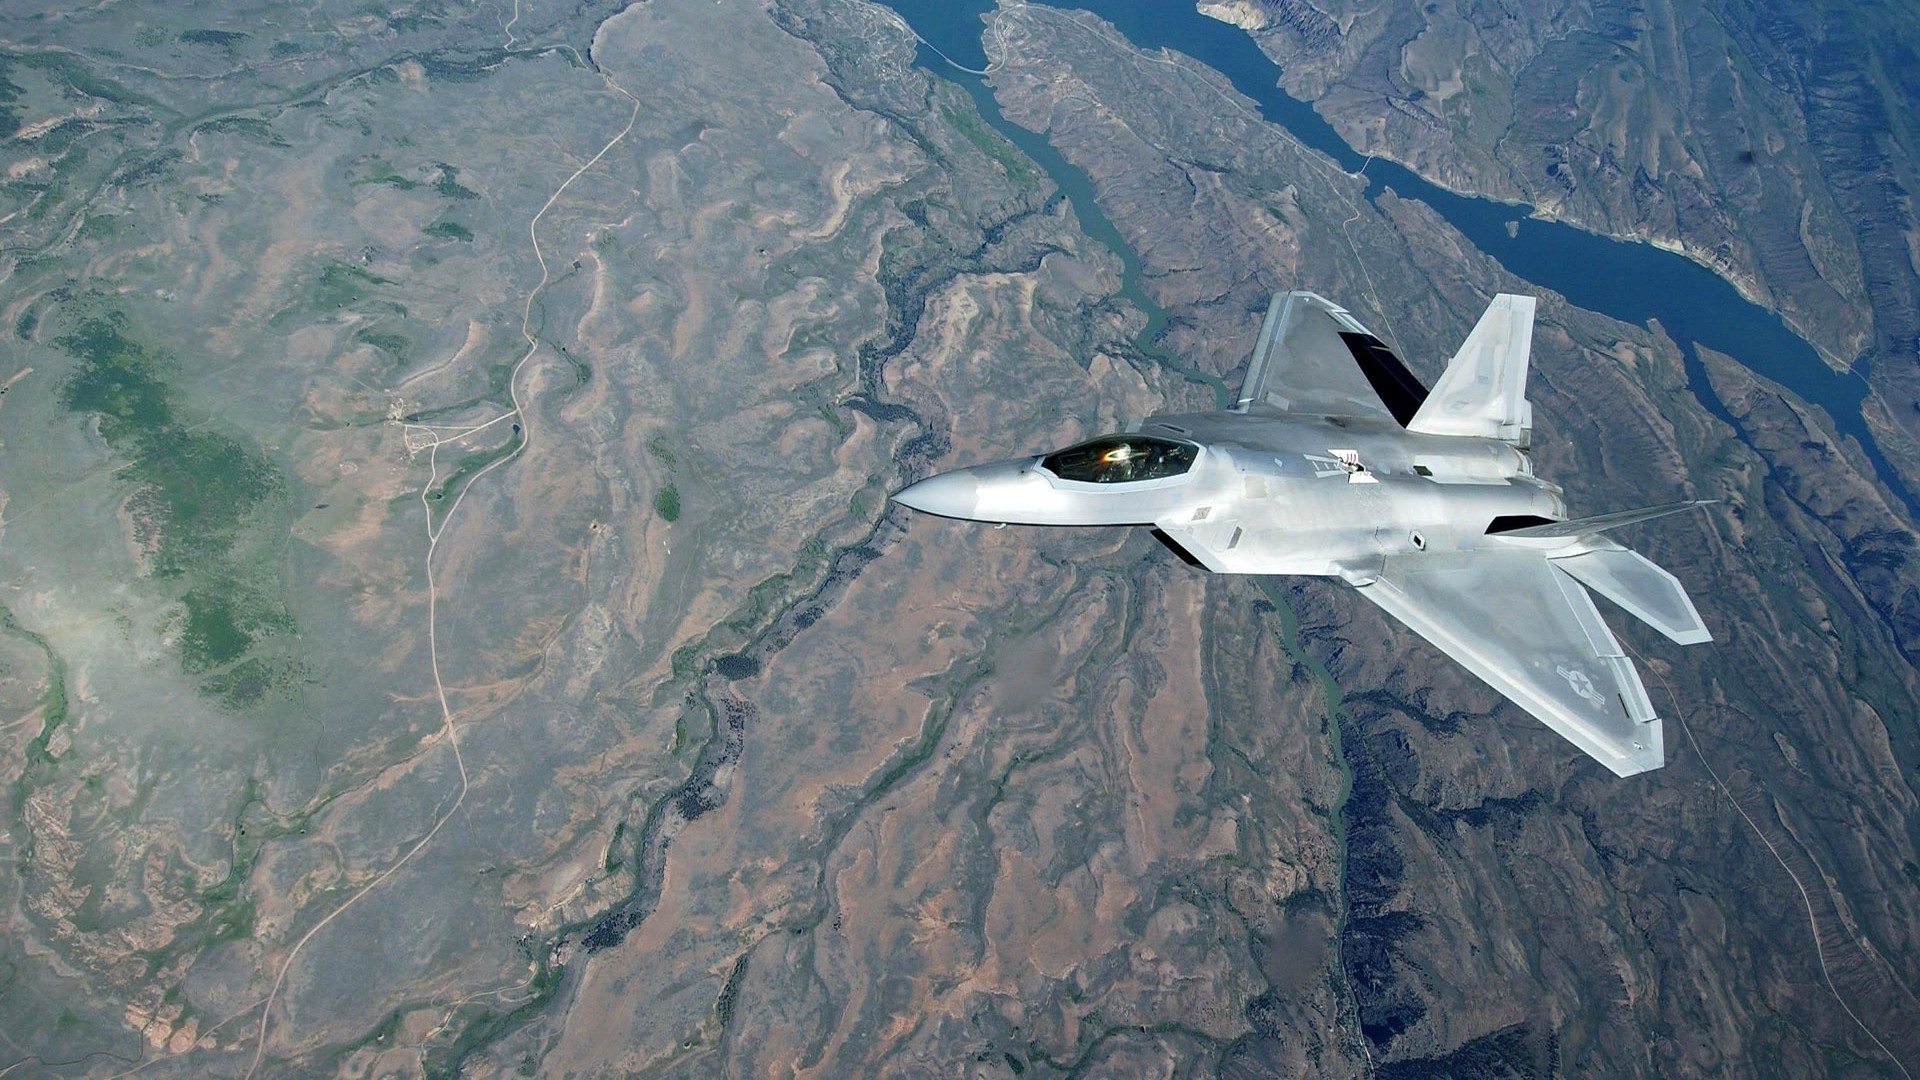 jets military aircraft f-22 raptor aircraft military airplane vehicle